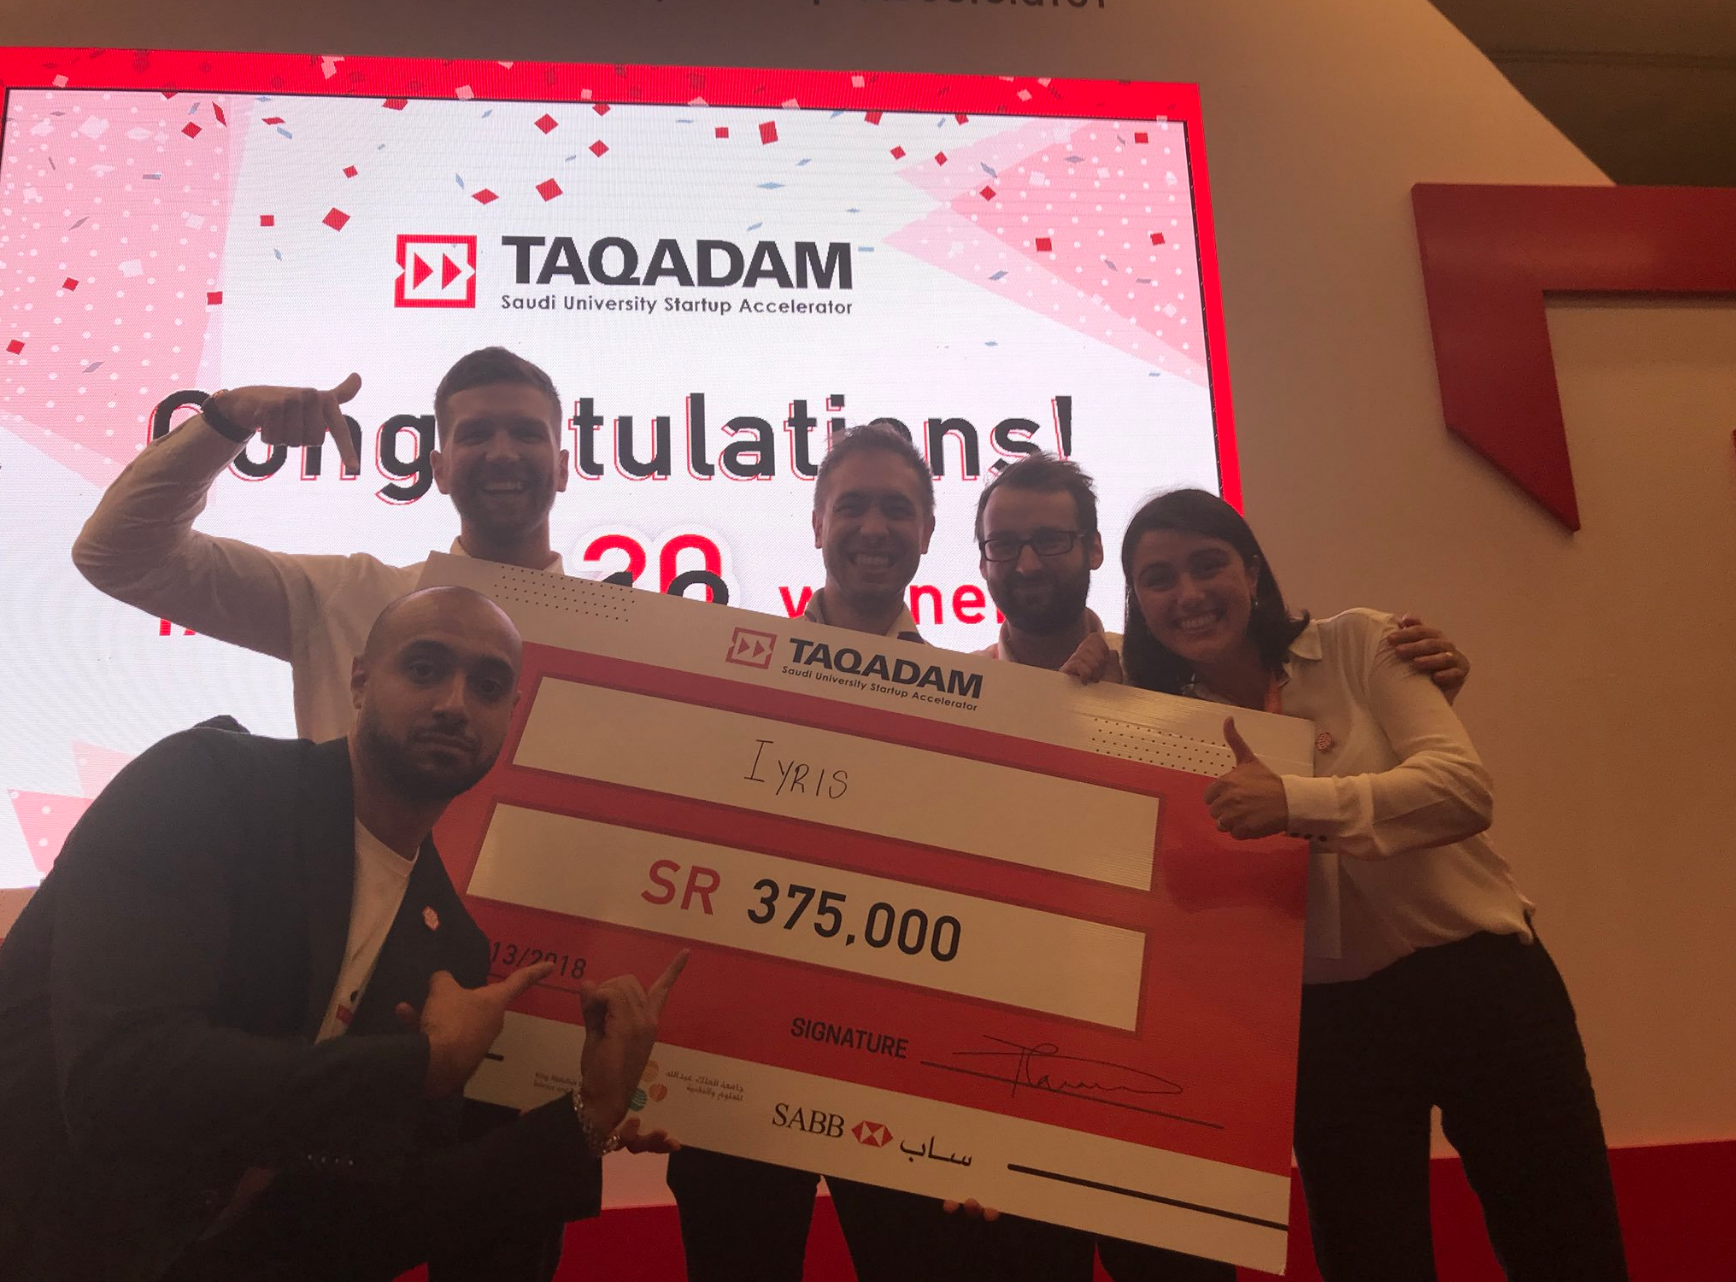 Iyris Team Wins TAQADAM Finals - 13/9/18Born out of the Omega Lab, the Iyris company is a startup comprising of Professor Derya Baran, Nicola Gasparini, Joel Troughton and Daniel Bryant. The Iyris company aim to generate electricity from windows using new transparent photovoltaic technologies.Recently, the Iyris Team won the TAQADAM finals held at KAUST!